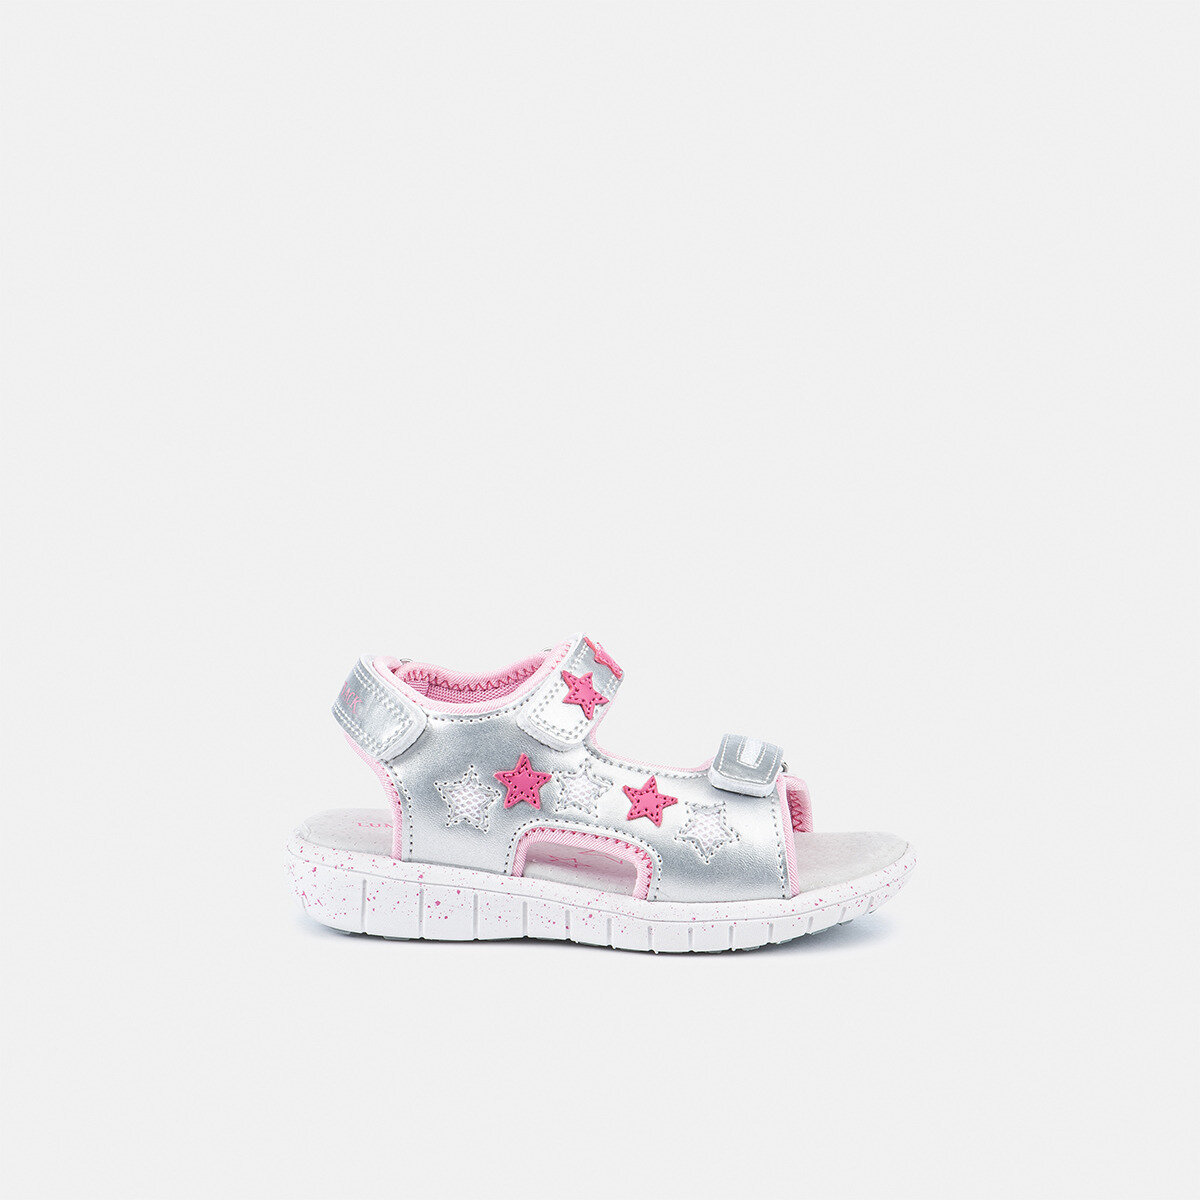 SPONGY SILVER/FUXIA Girl Sandals